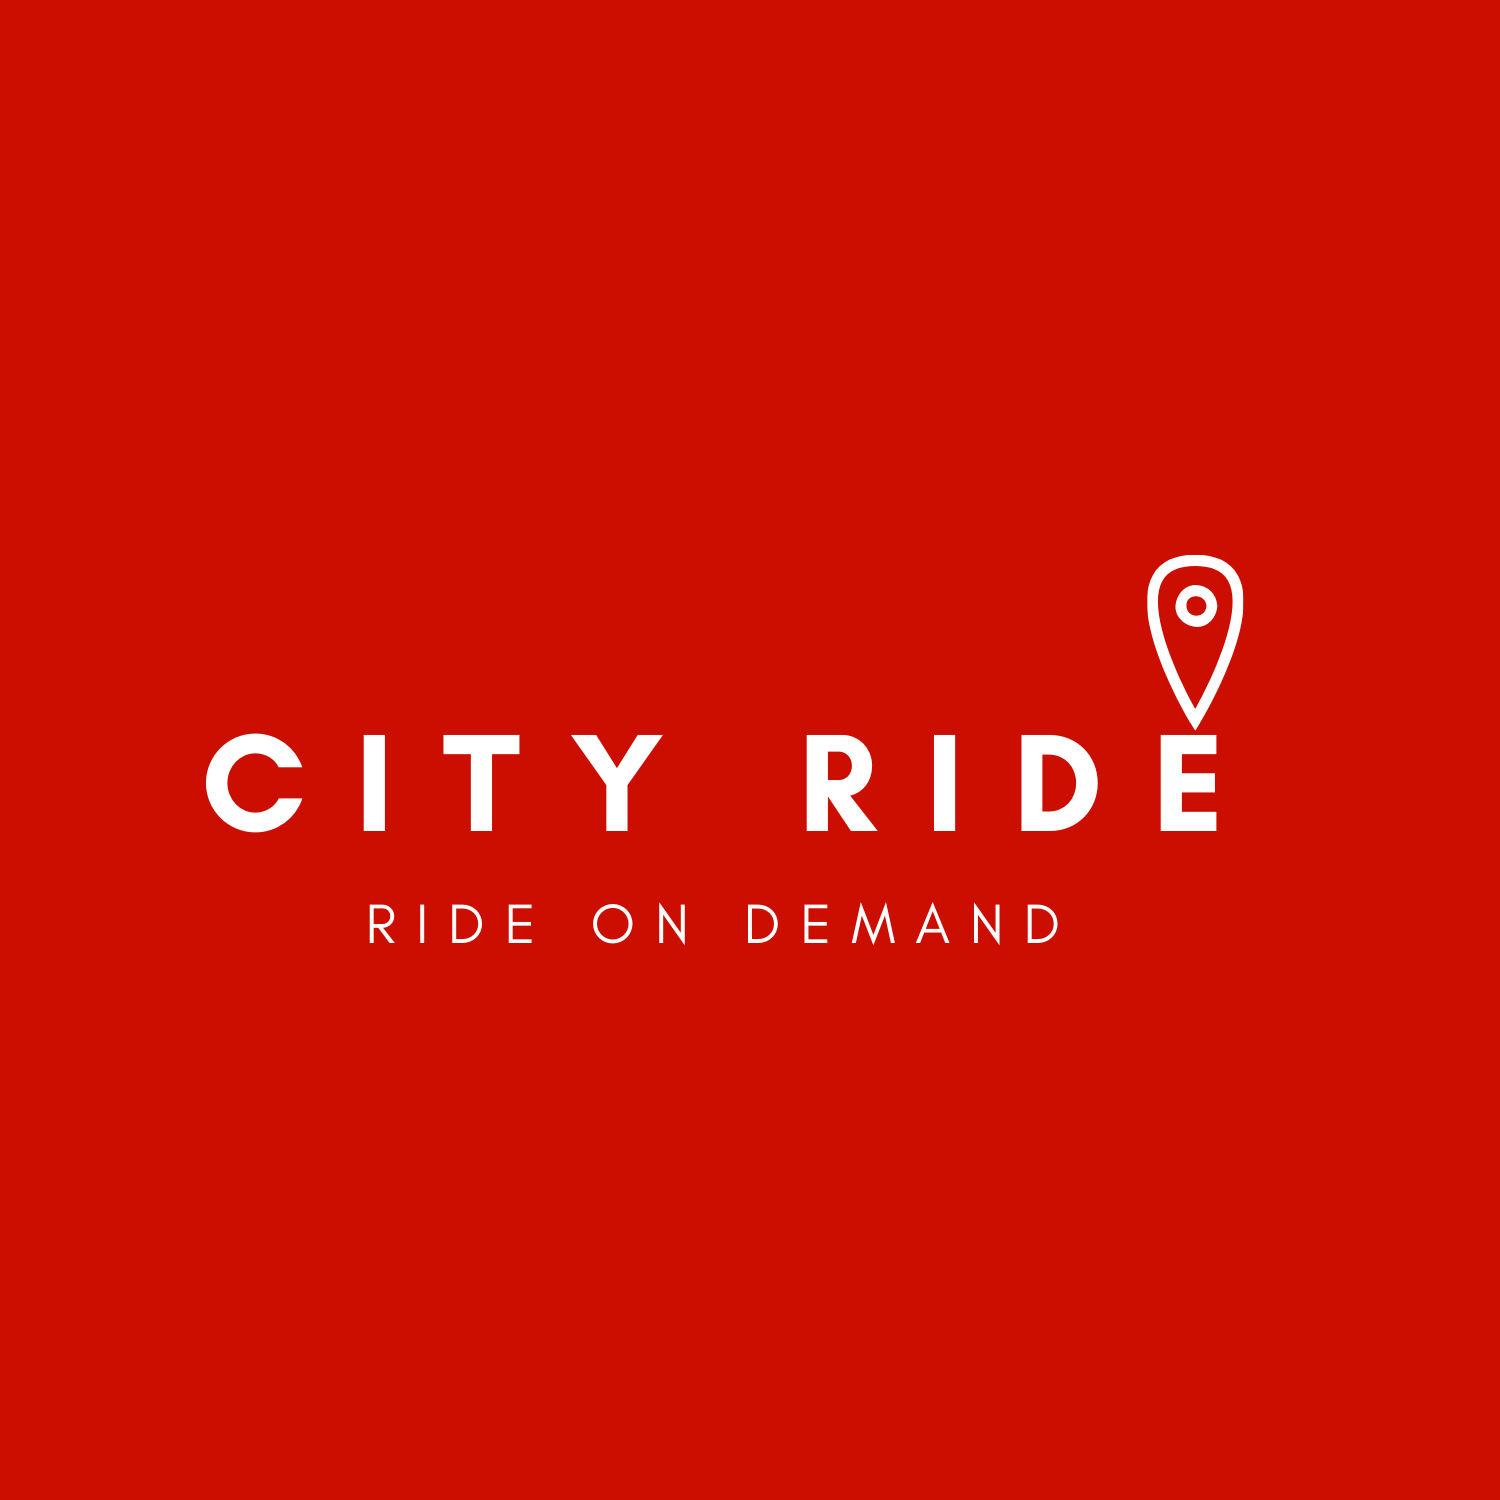 https://kpiteng.com/assets/our-work/app-icon/city-ride.png